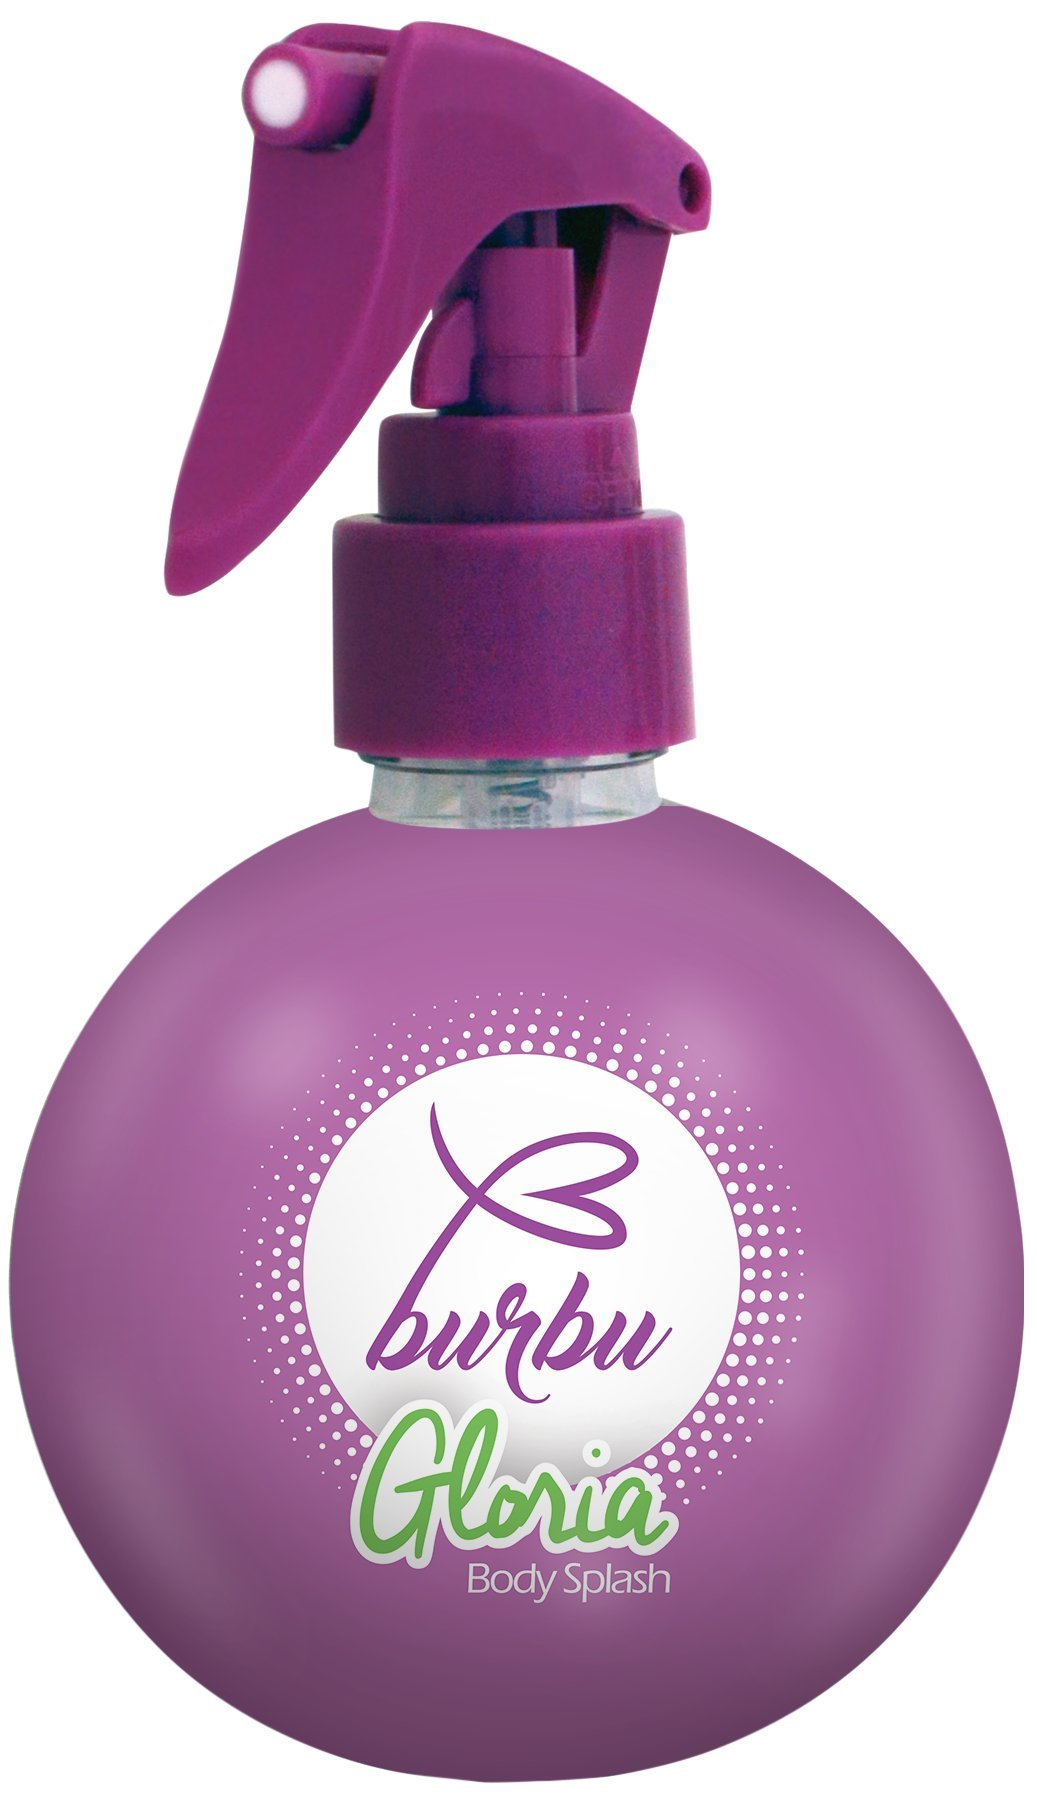 BODY SPLASH BURBU-GLORIA